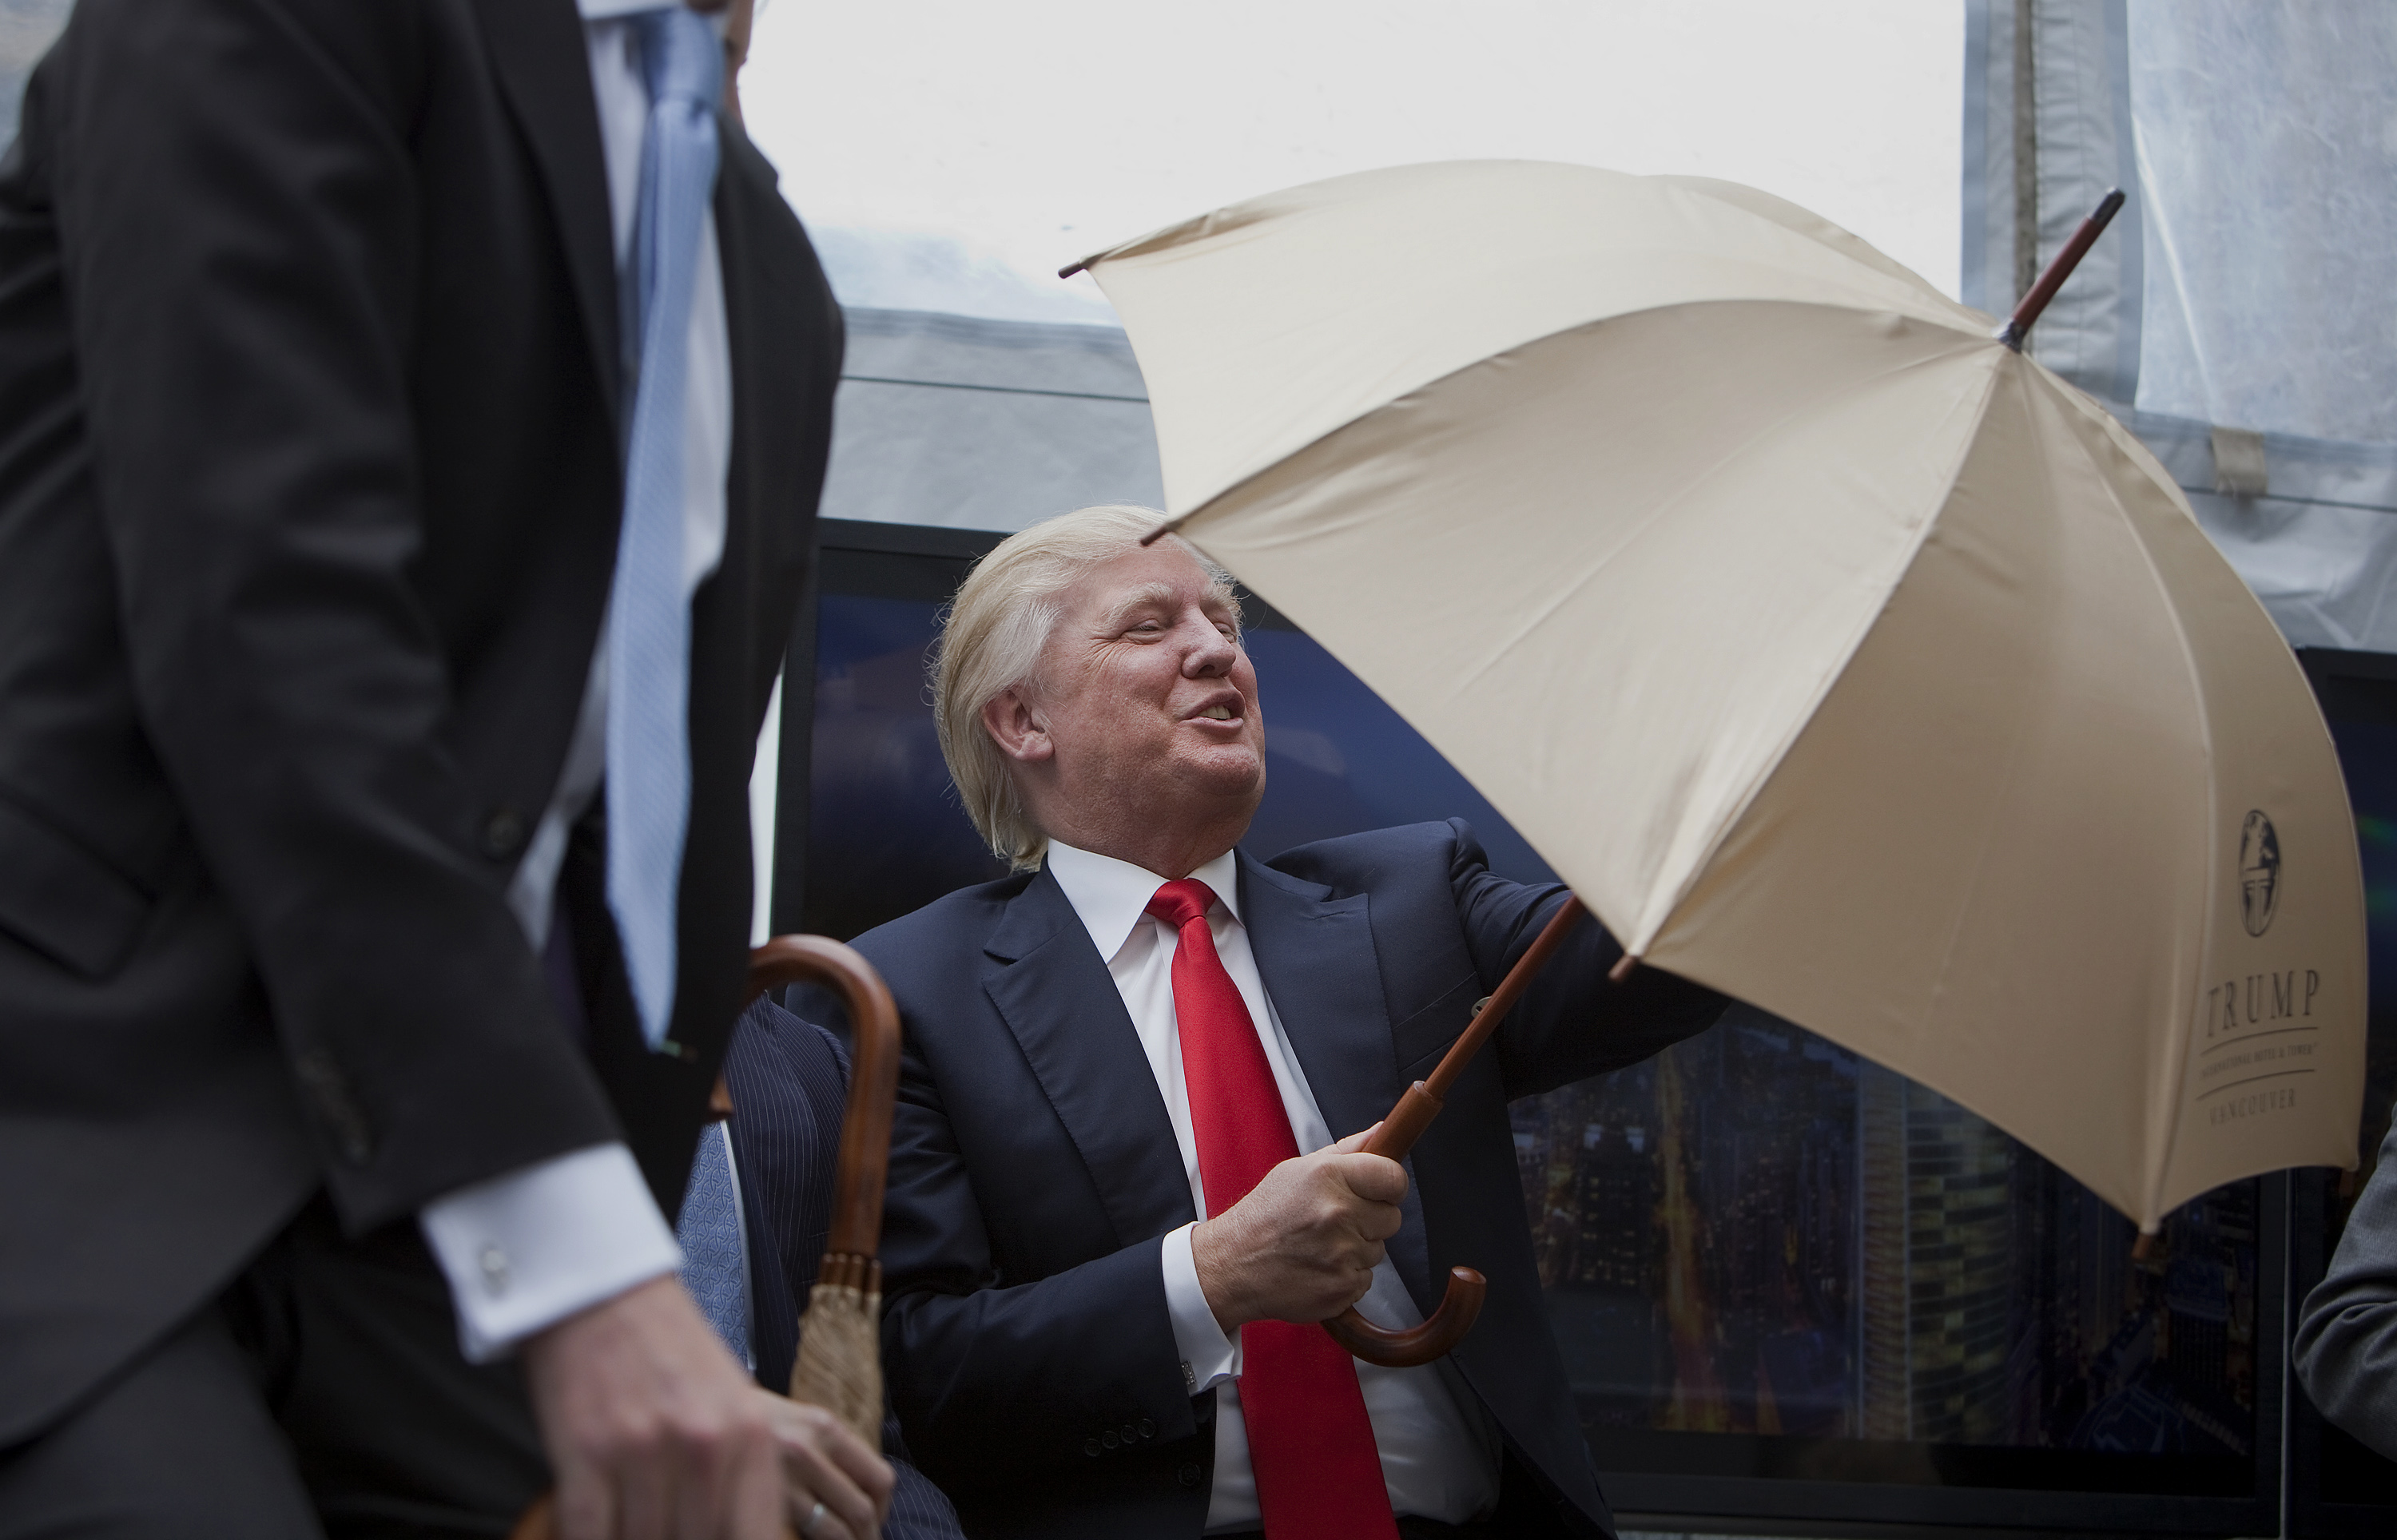 Real estate investor Donald Trump opens an umbrella while speaking at an event in Vancouver, British Columbia, Canada, on Wednesday, June 19, 2013.